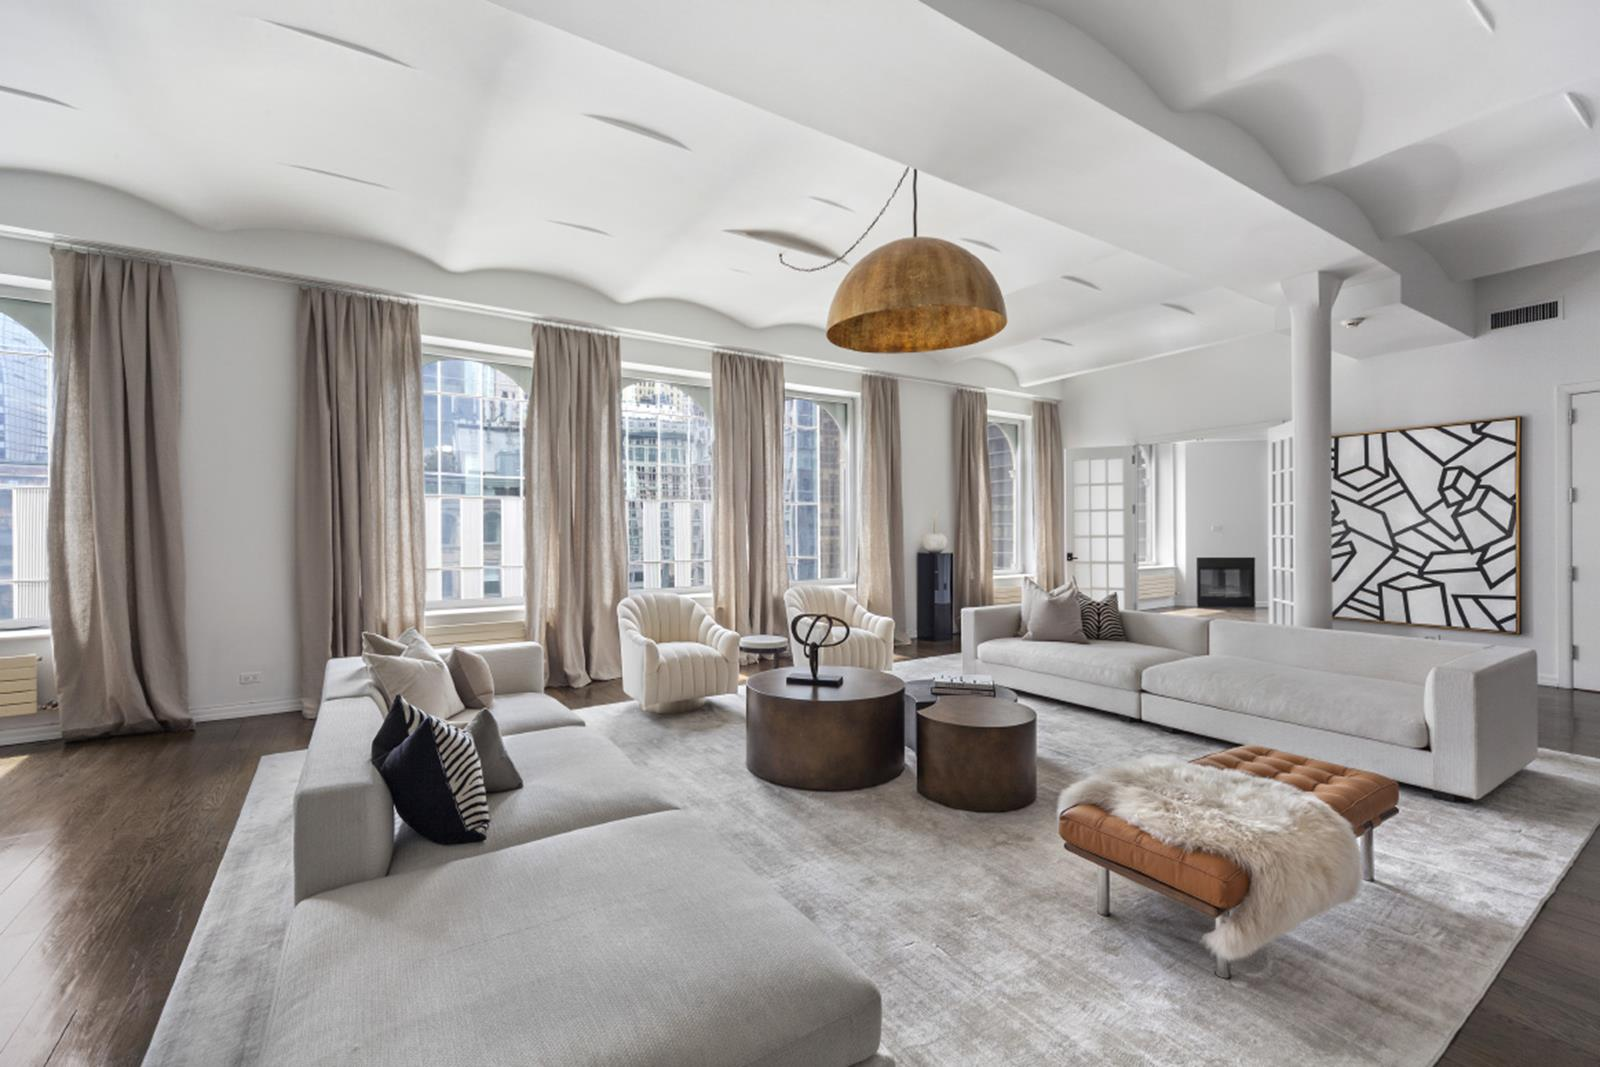 This Financial District's celebrated duplex condo Penthouse is now available for the first time in many years. With approx 7,175 sf of interior space and approx 3,500 sf of planted terraces, this is the ultimate downtown residence. A private landing leads you to phenomenal entertaining areas with soaring 12' ceilings, living room, dining room, screening room, huge chef's kitchen with breakfast room, library w/gas fireplace, 4 bedrooms, 4 full baths and a powder room. In addition there is a staff room with full bath, laundry room, and closets galore. Four exposures, barrel vaulted ceilings and handsome oak strip floors add to the uniqueness of this property. The grand circular and architectural staircase takes you to the upper level which houses the sun flooded grand master suite, two huge setback terraces, a very cozy den, a kitchenette and much more. One must visit this property and experience the captivating aura of light, views, grand scale and drama. Live in one of NYC's most vibrant neighborhoods. Schedule a viewing today. 1% Transfer Fee payable by buyer. Co-exclusive.